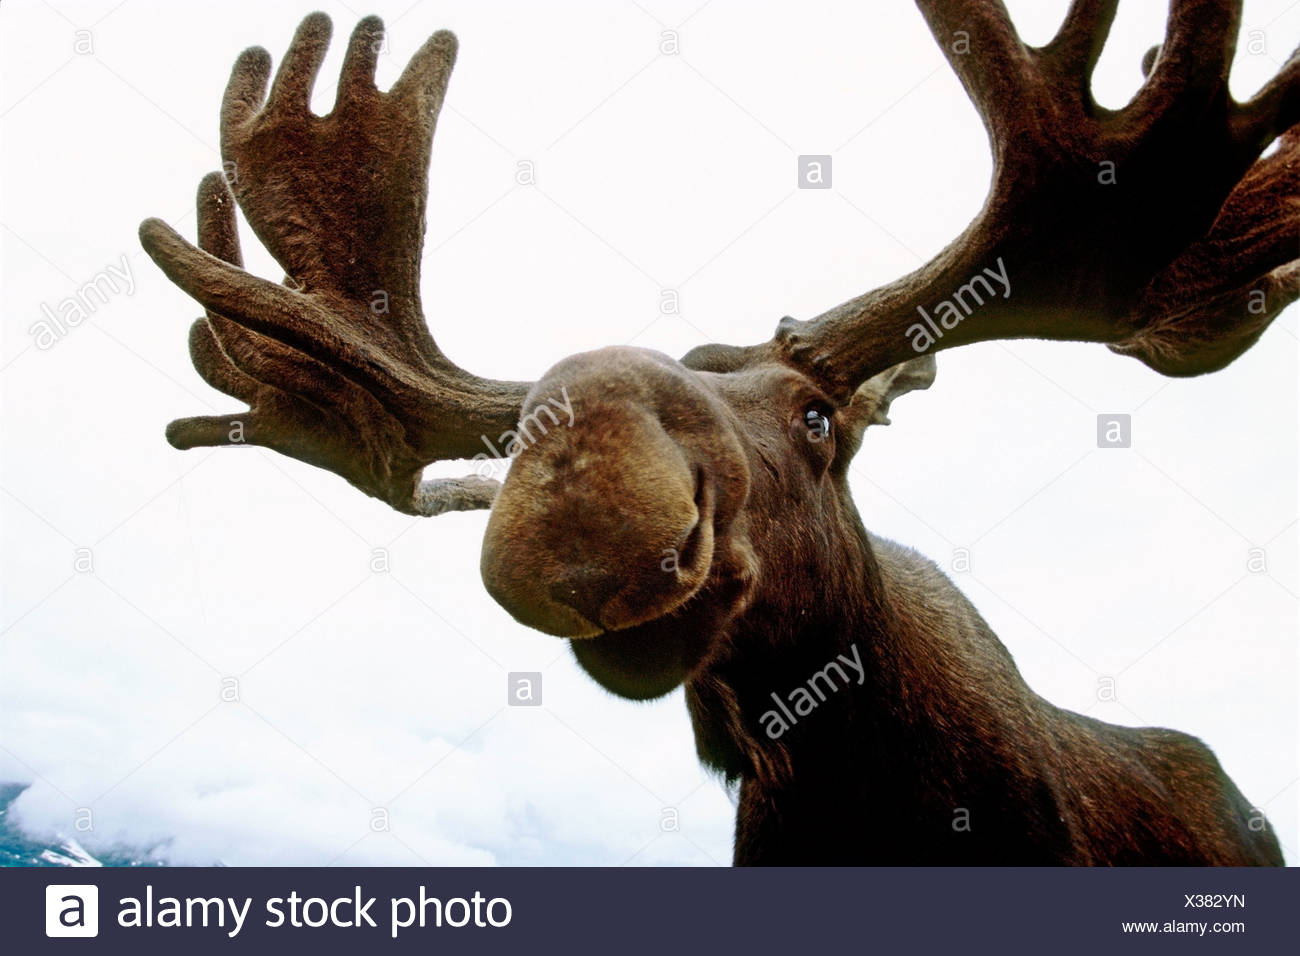 CAPTIVE: Low Angle view of a bull moose at the Alaska Wildlife Conservation Center CAPTIVE Stock Photo